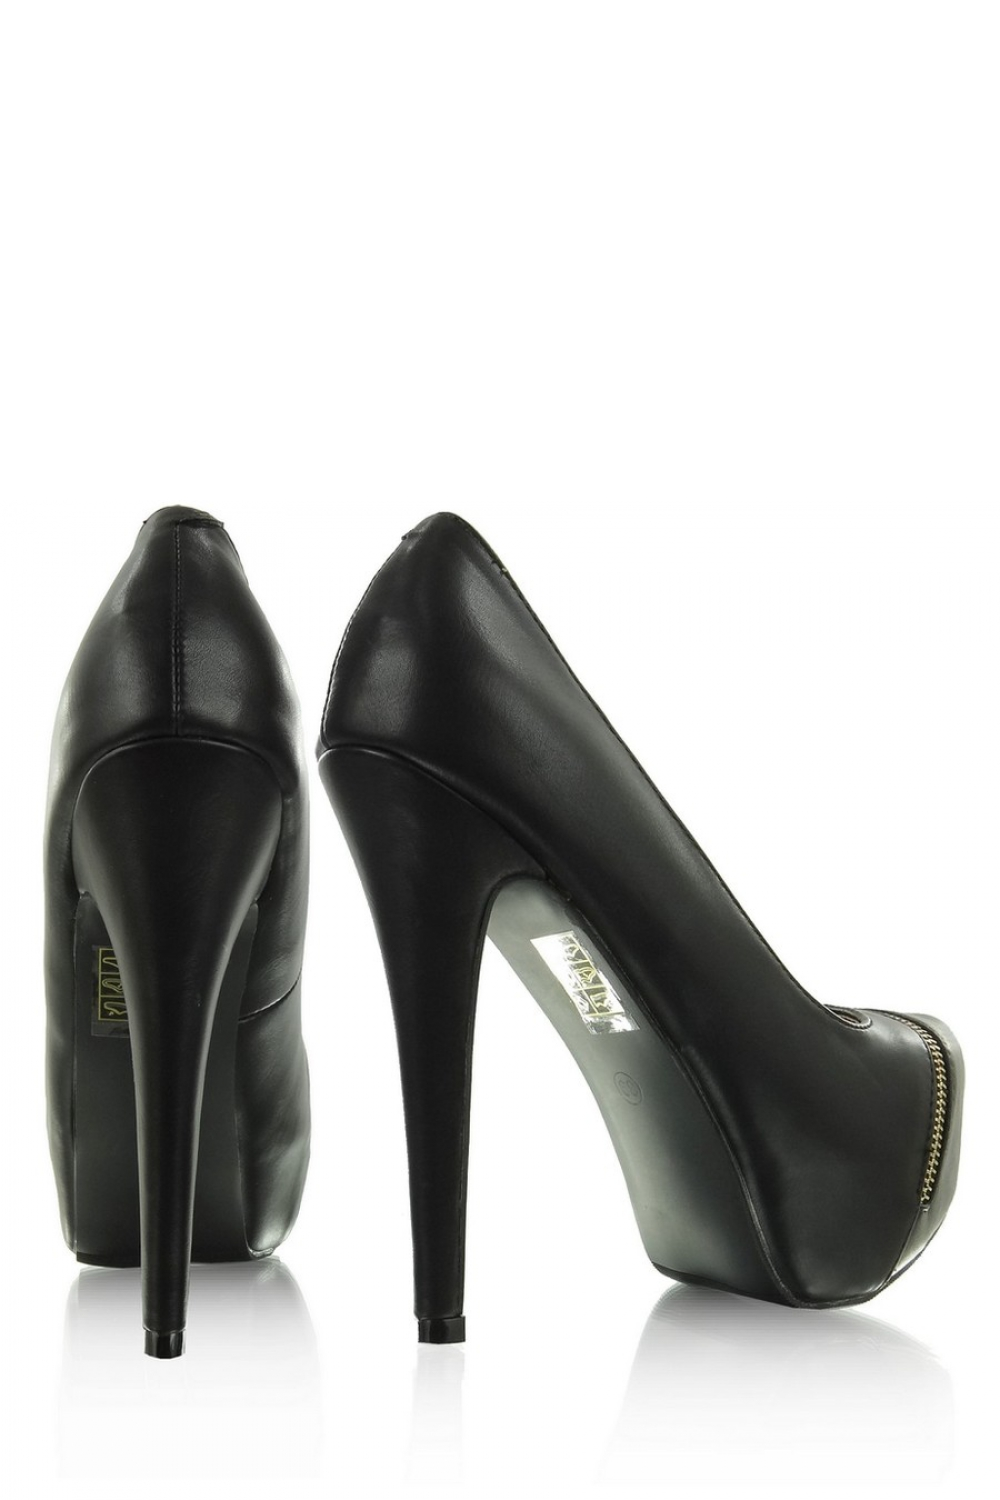 High heel pumps model 32001 Heppin